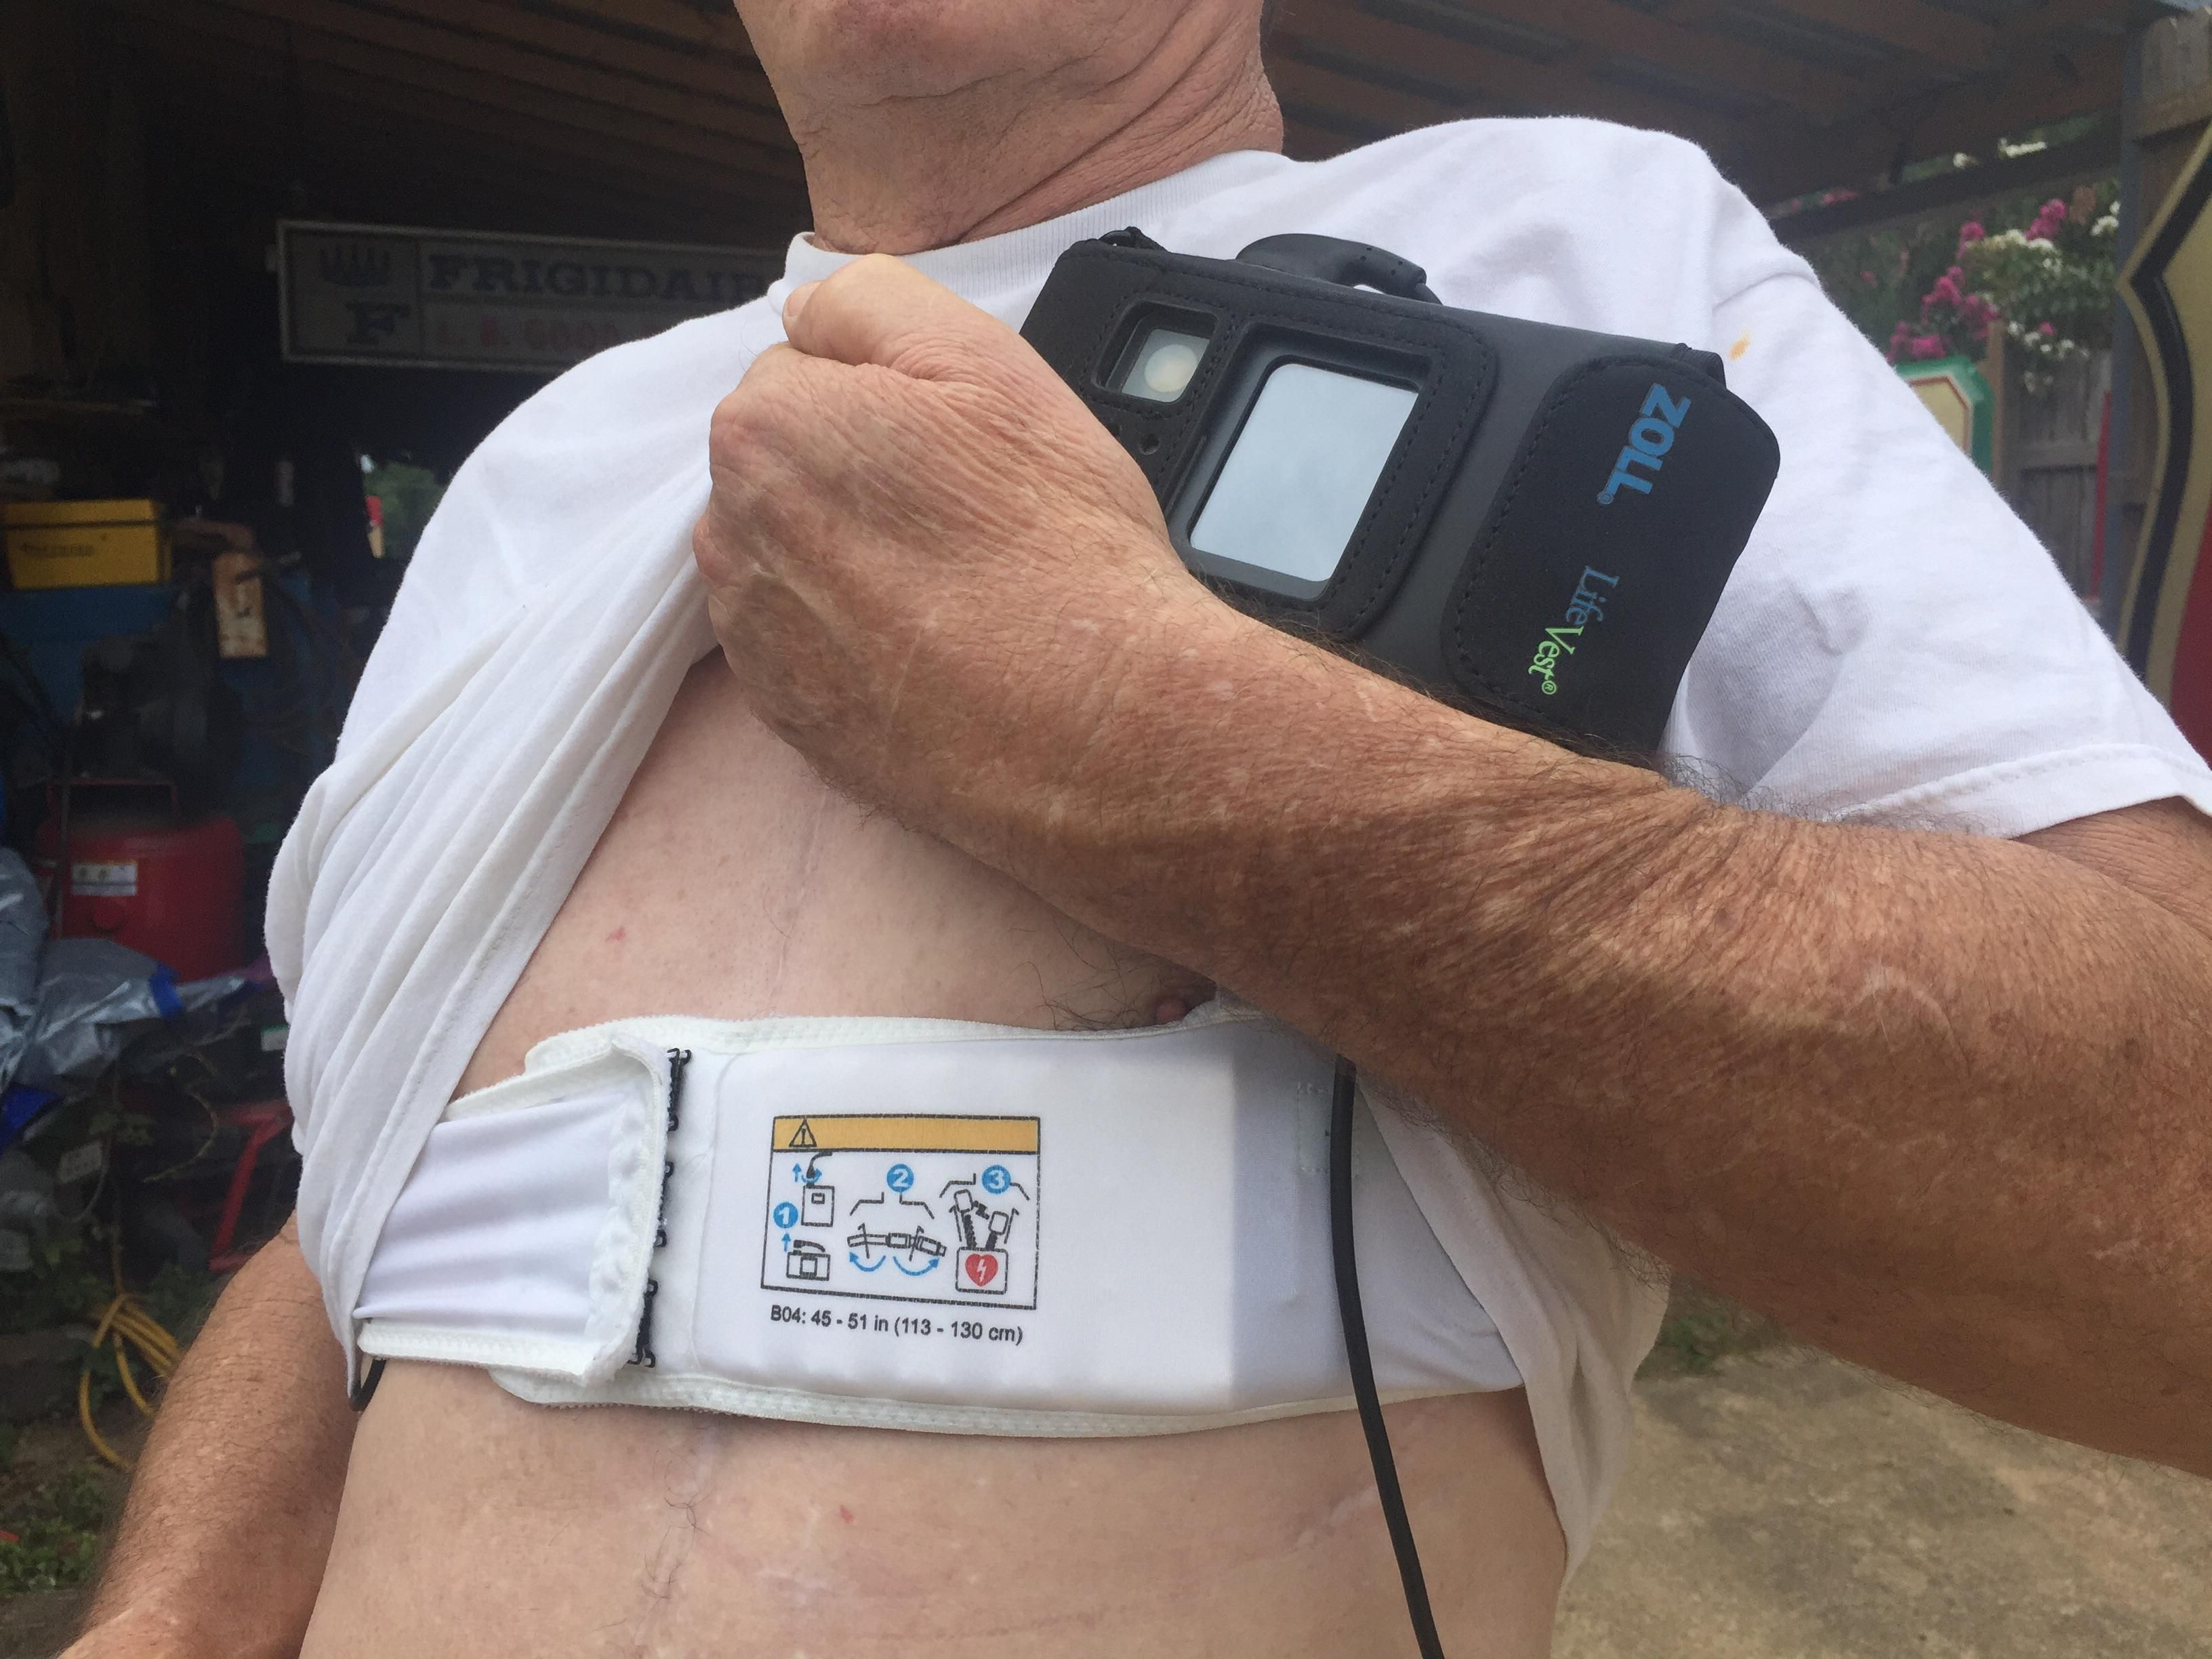 This is a Zoll Life Vest. It is a wearable defibrillator that is ...